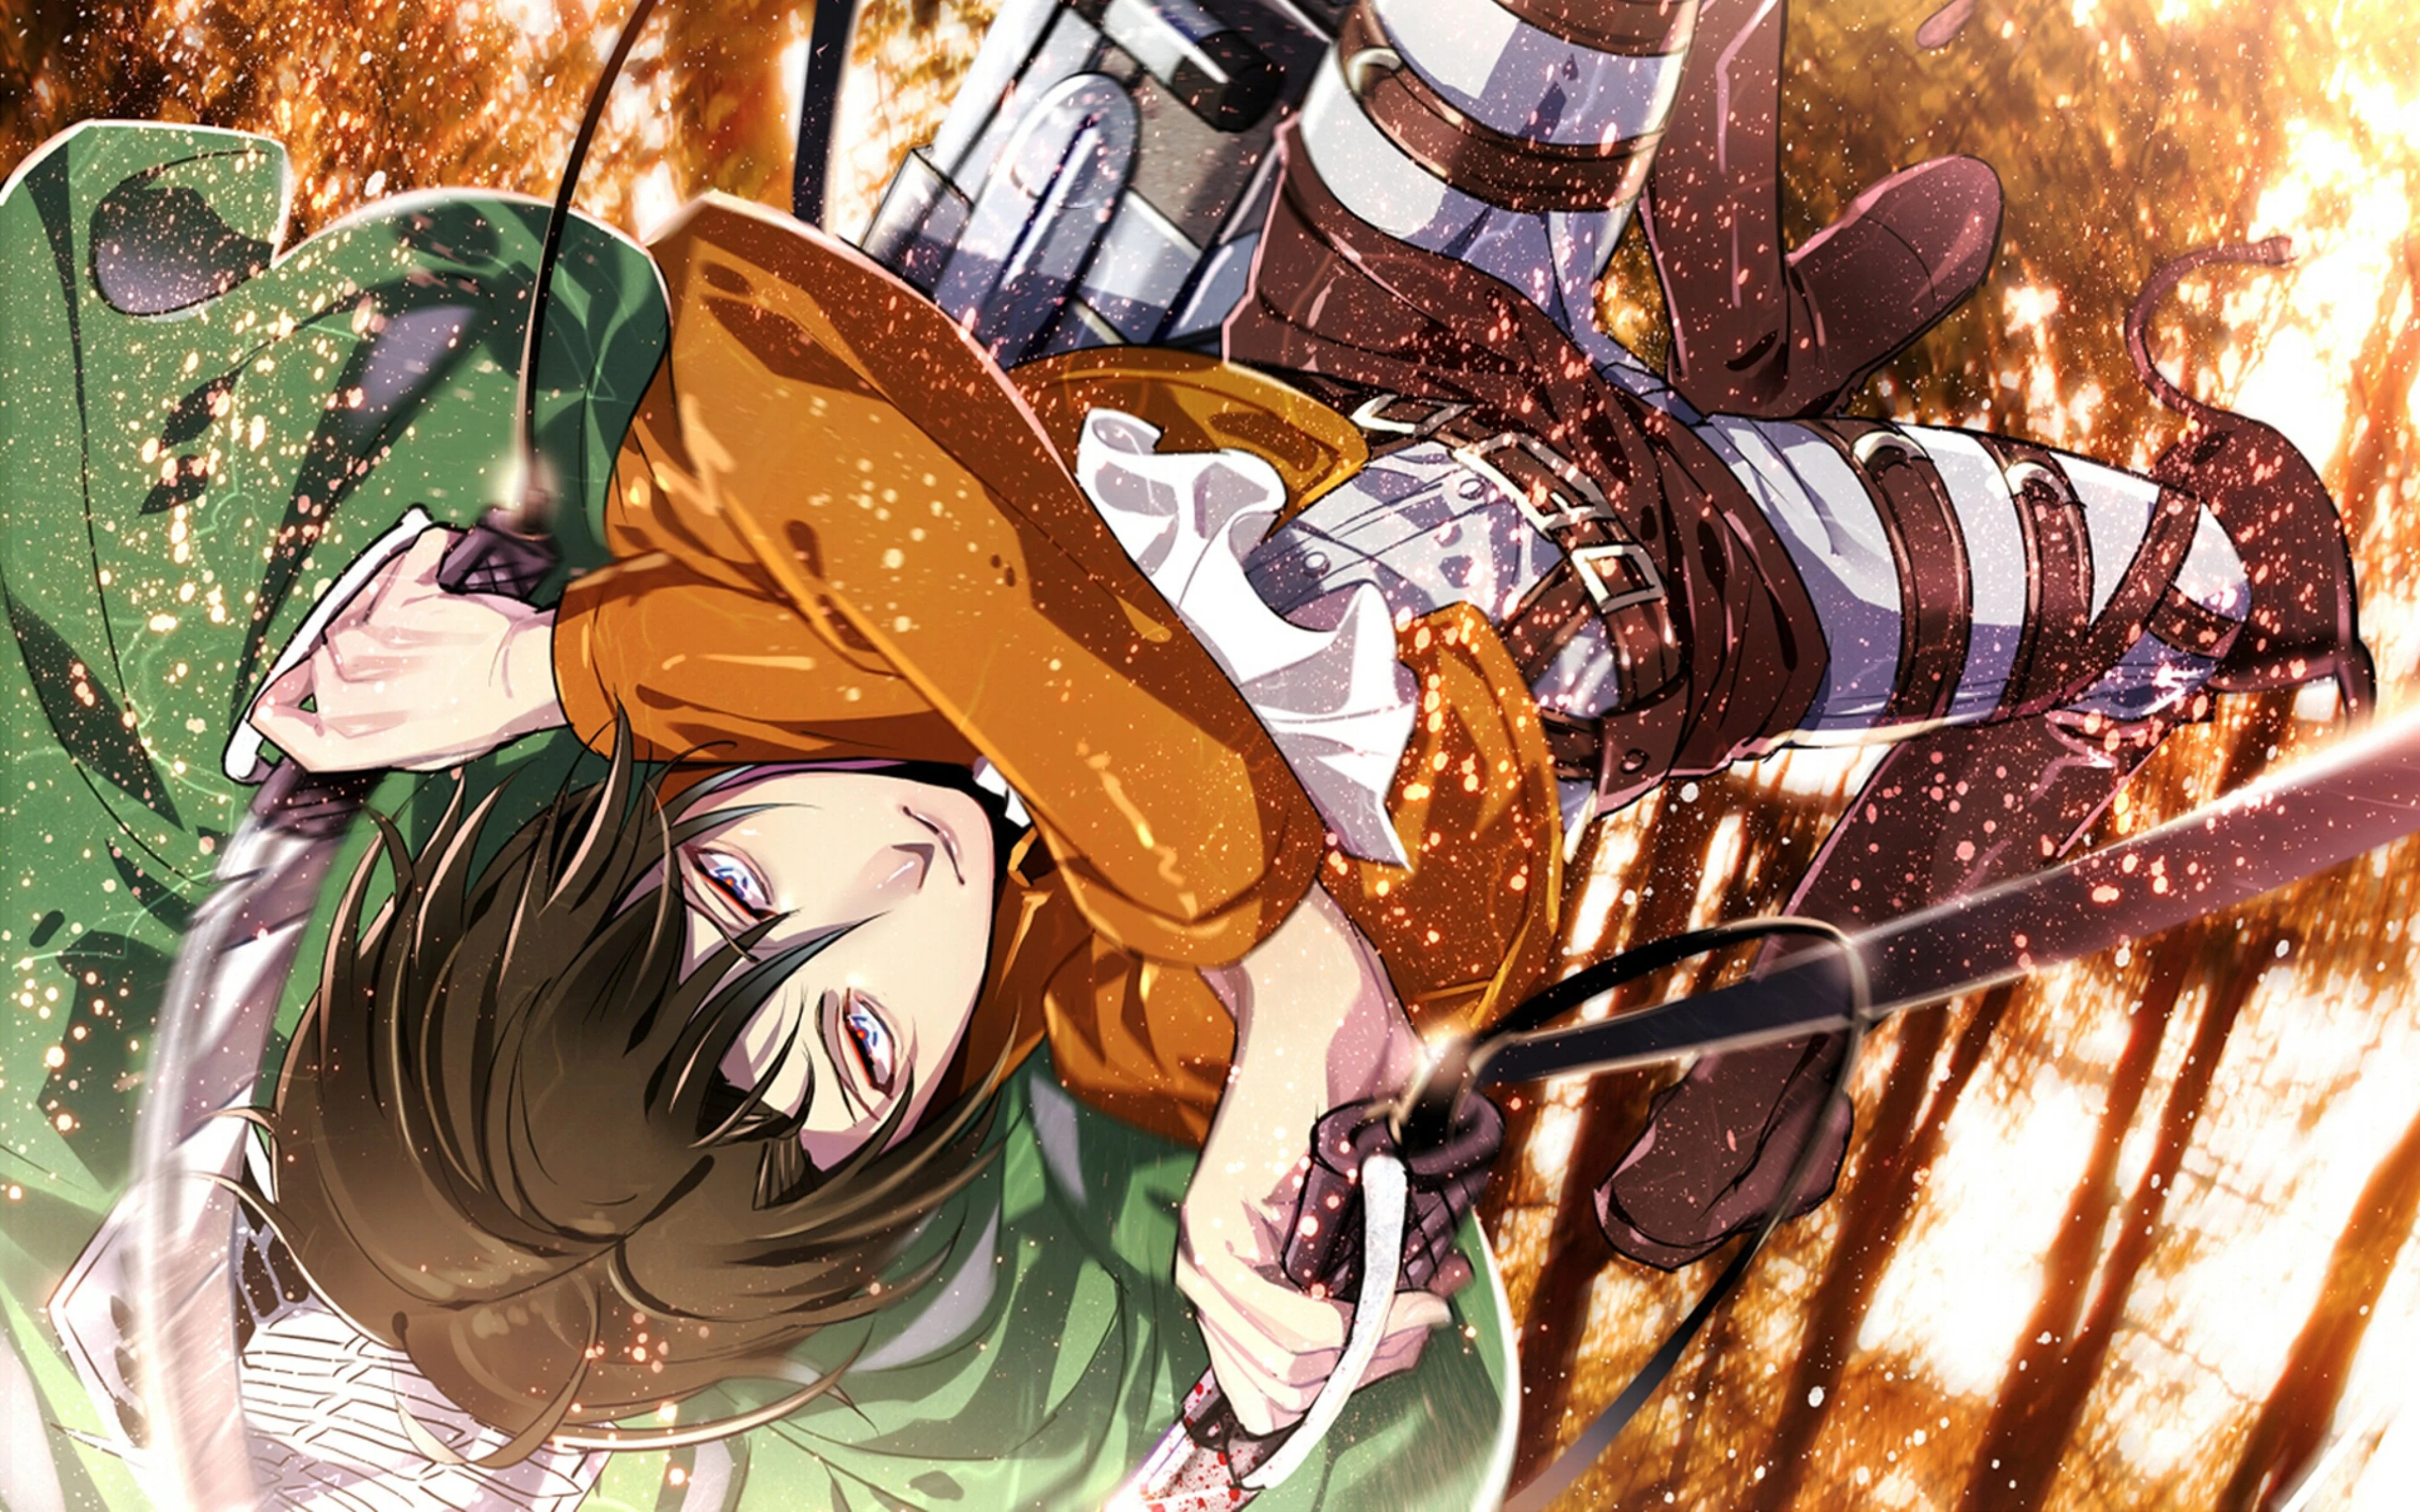 Collected 430 attack on titan wallpapers and background picture for desktop & mobile device. Attack On Titan Anime 4K Wallpapers - Top Free Attack On ...